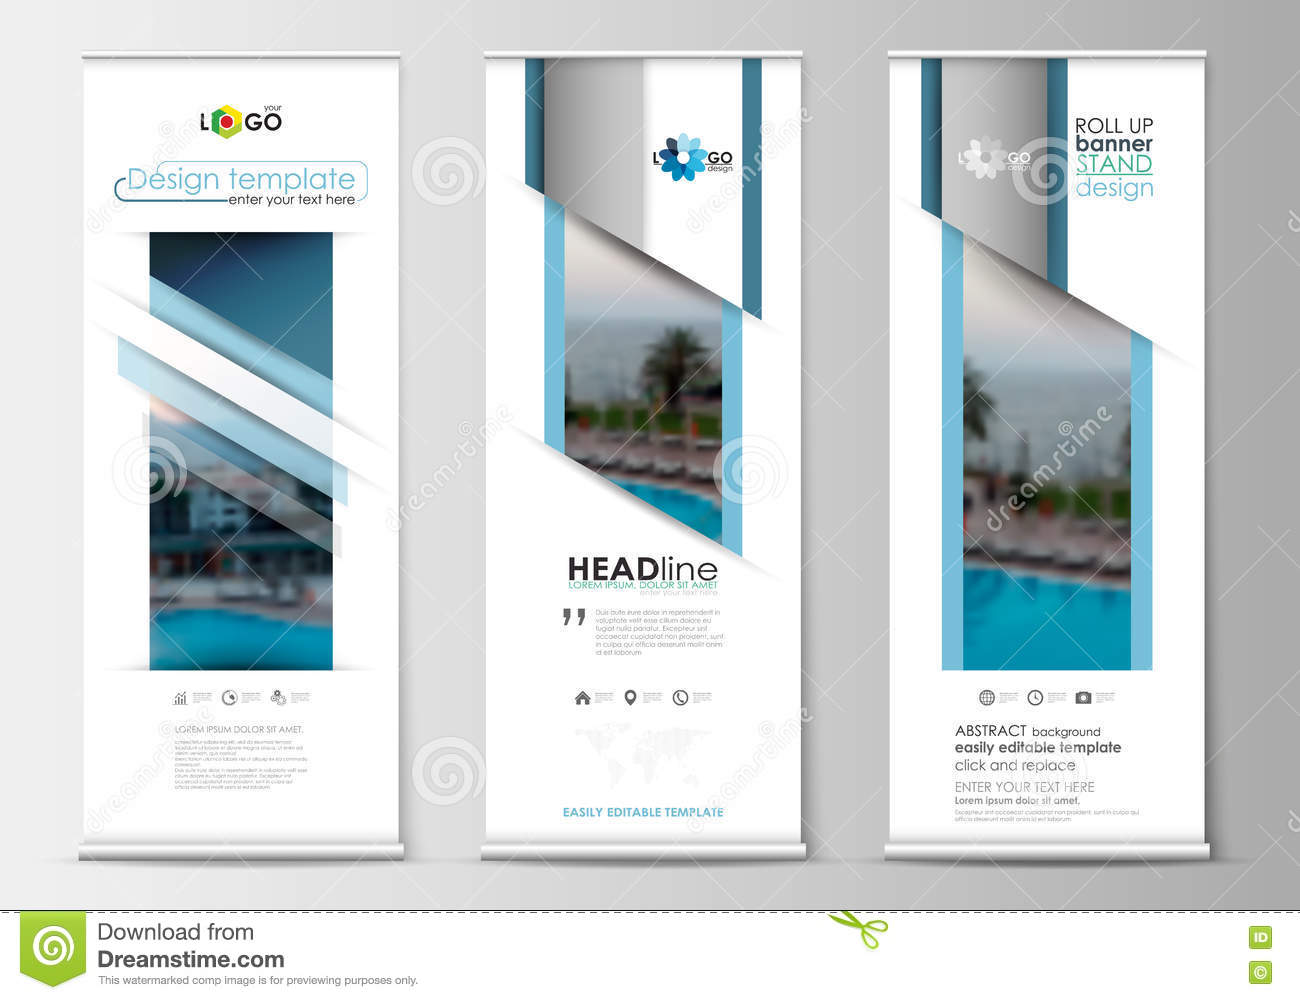 Roll up banner stands flat design abstract geometric templates download roll up banner stands flat design abstract geometric templates modern business layouts cheaphphosting Choice Image